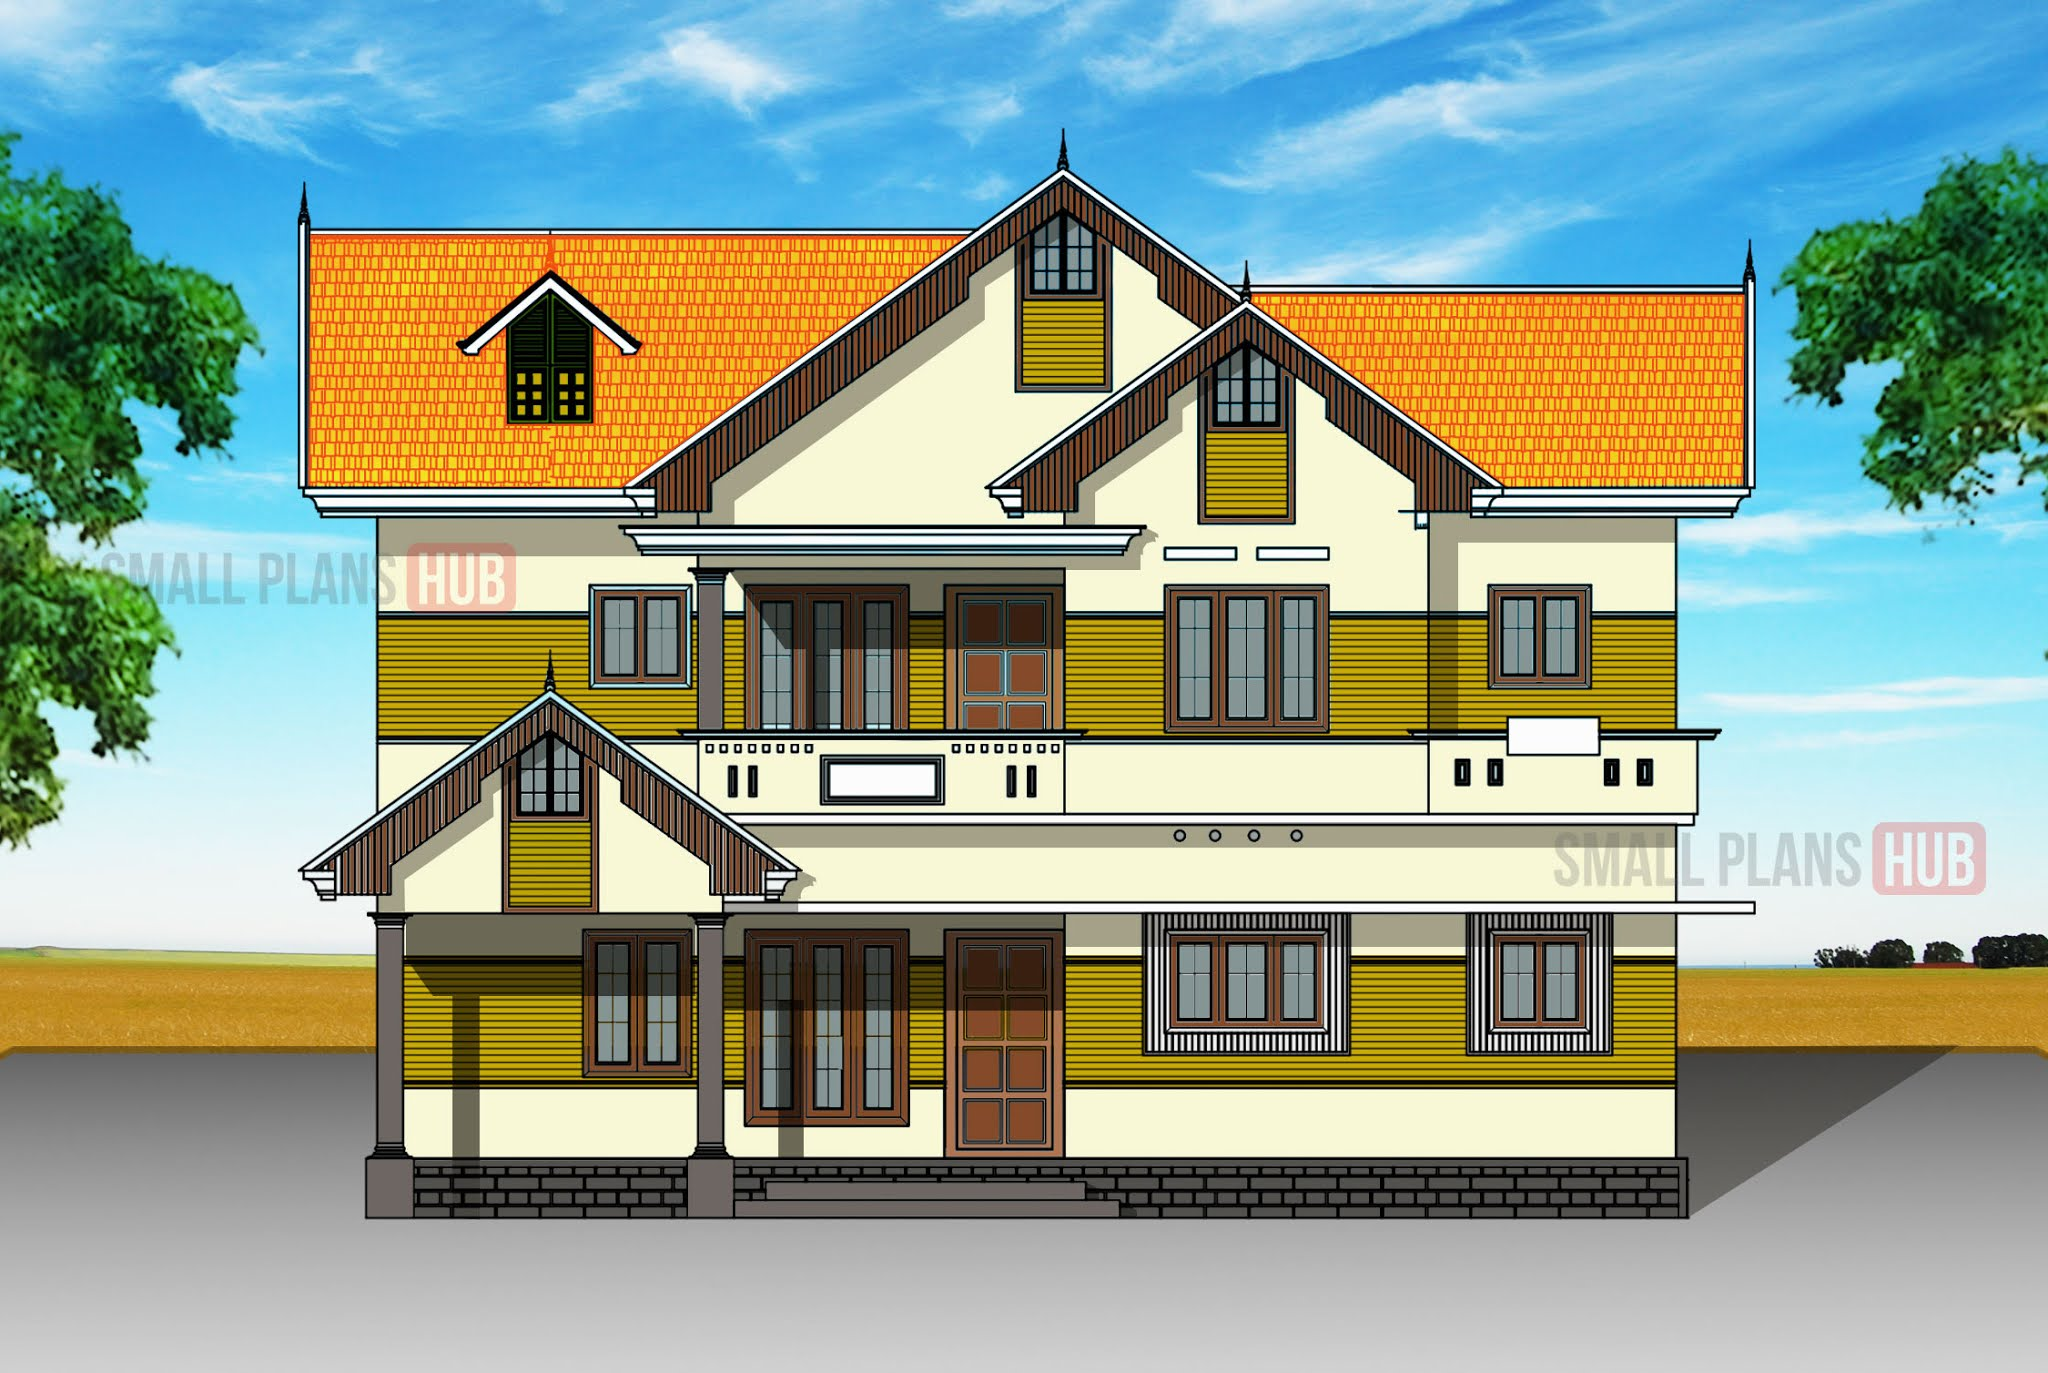 Kerala Style Double Storey House Plans Under 1600 Sq Ft For 5 5 Cent Plots Small Plans Hub